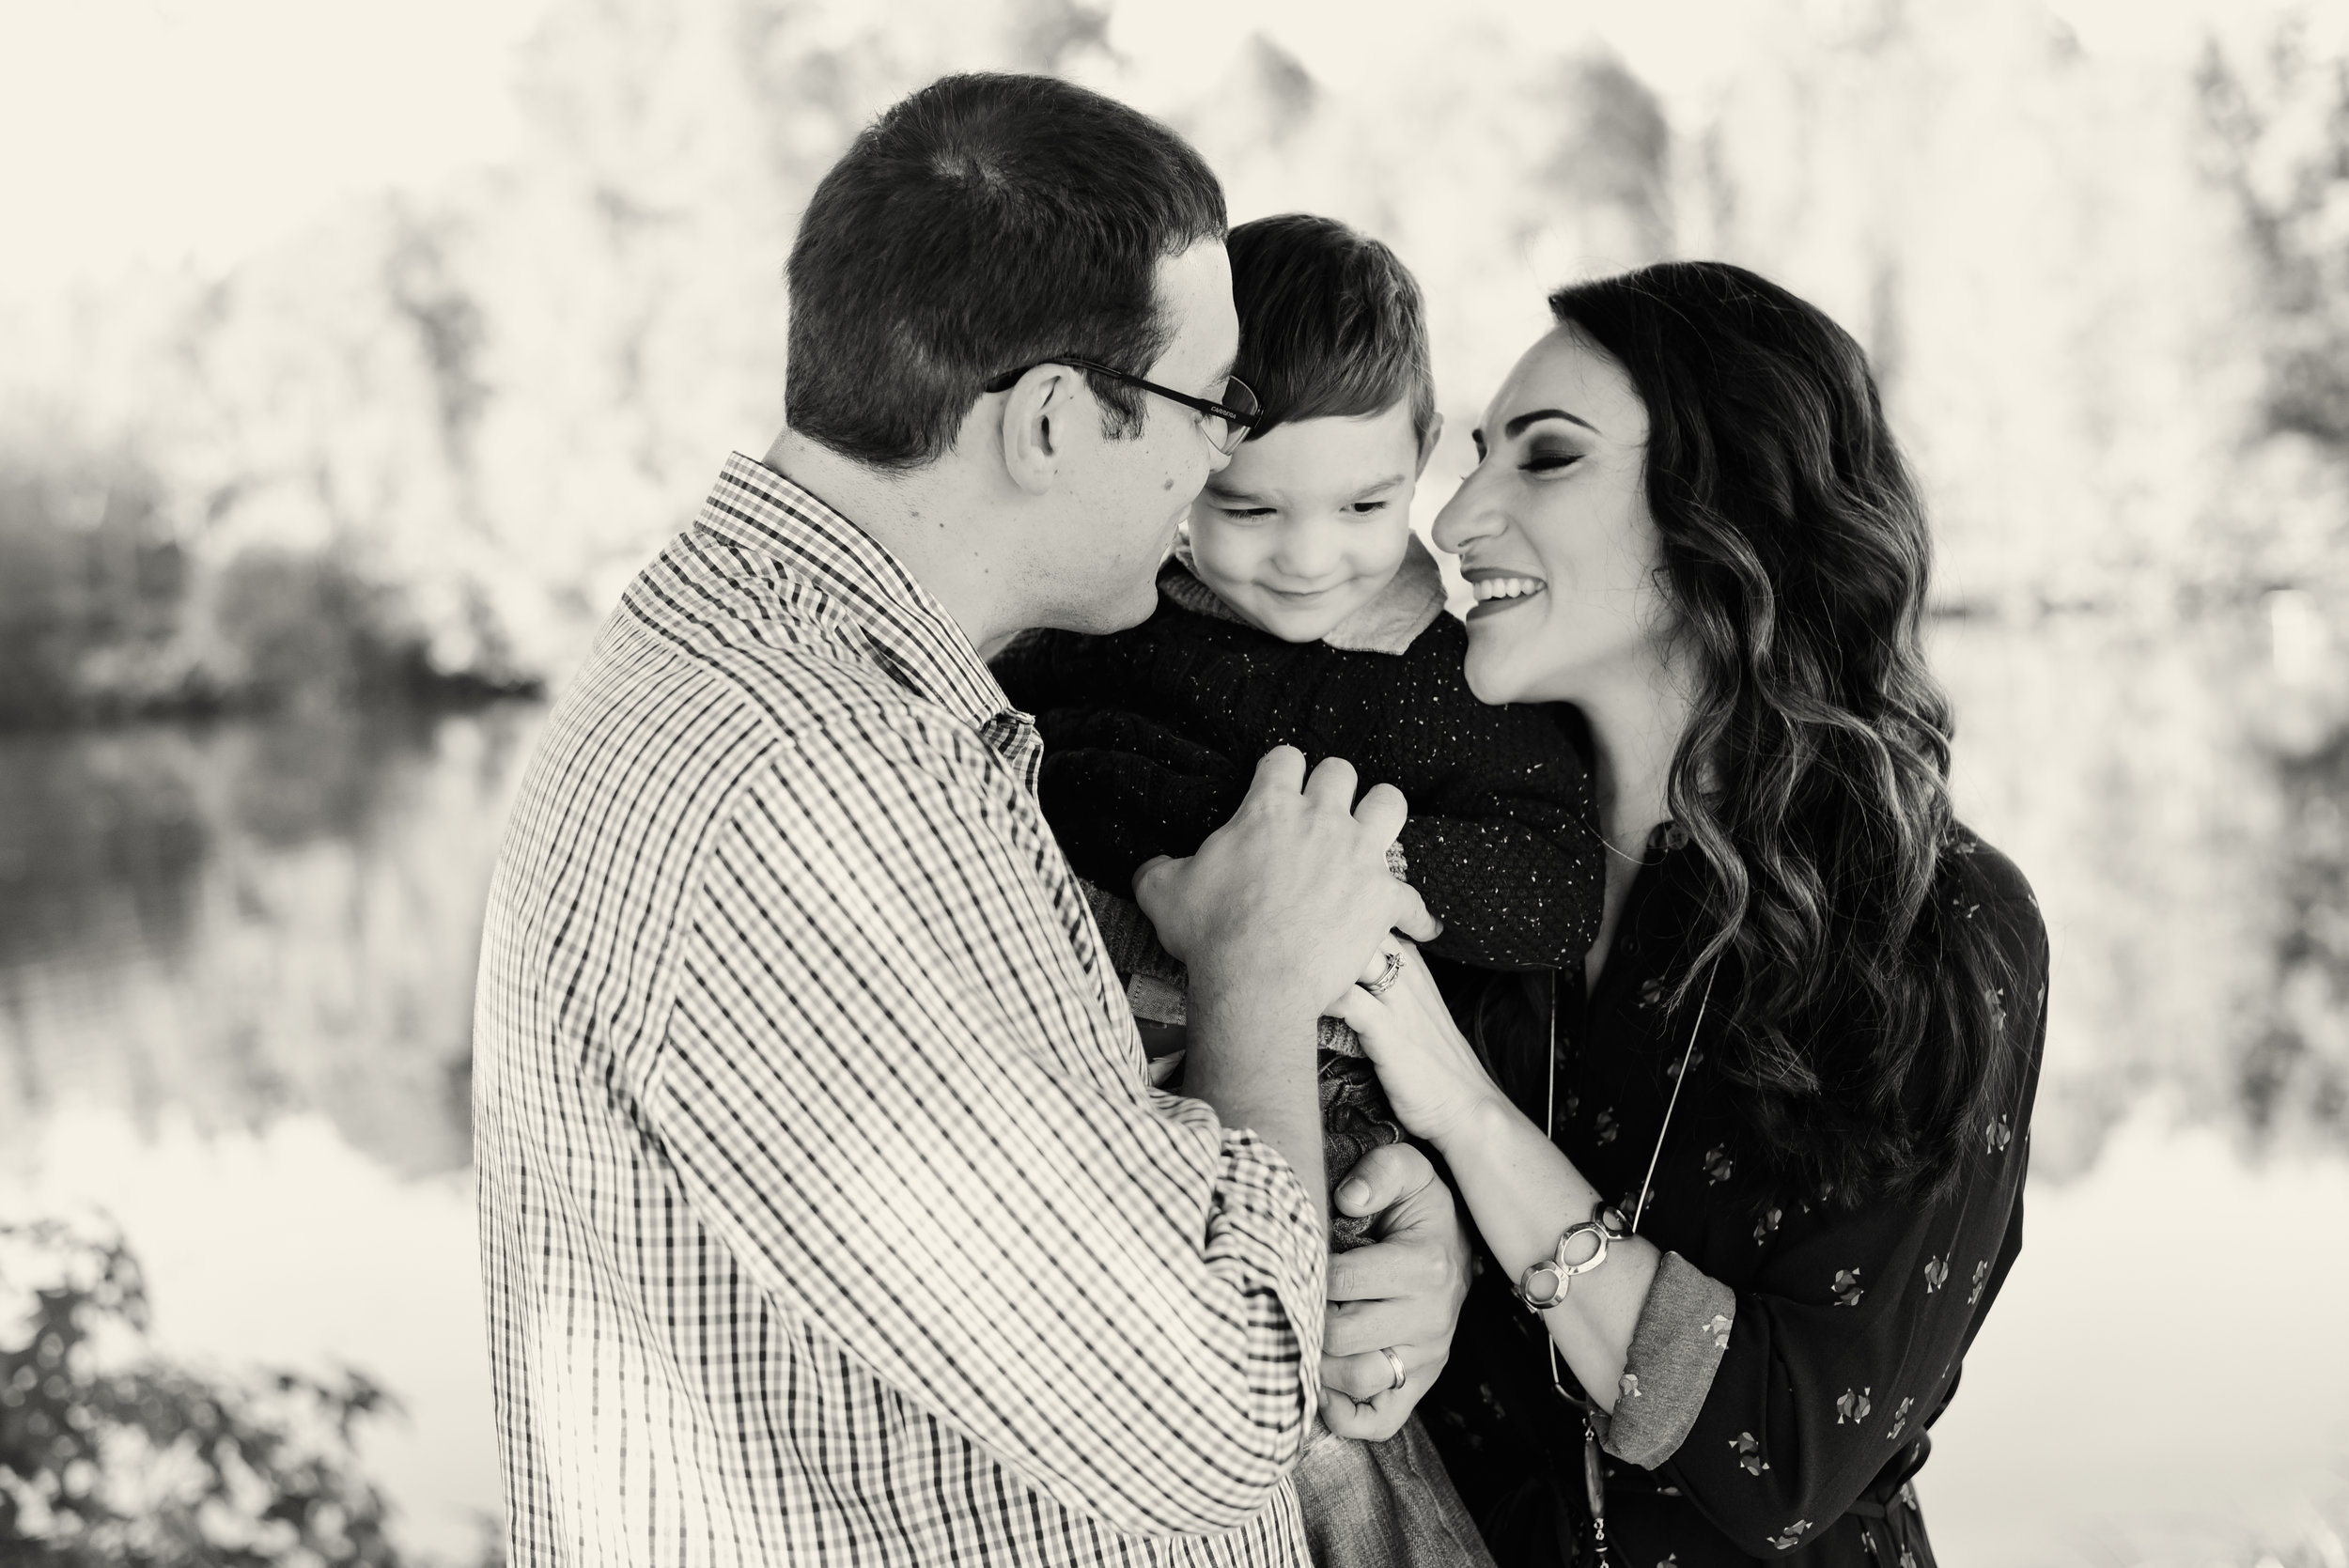 Seagroves Farm Park Family Session